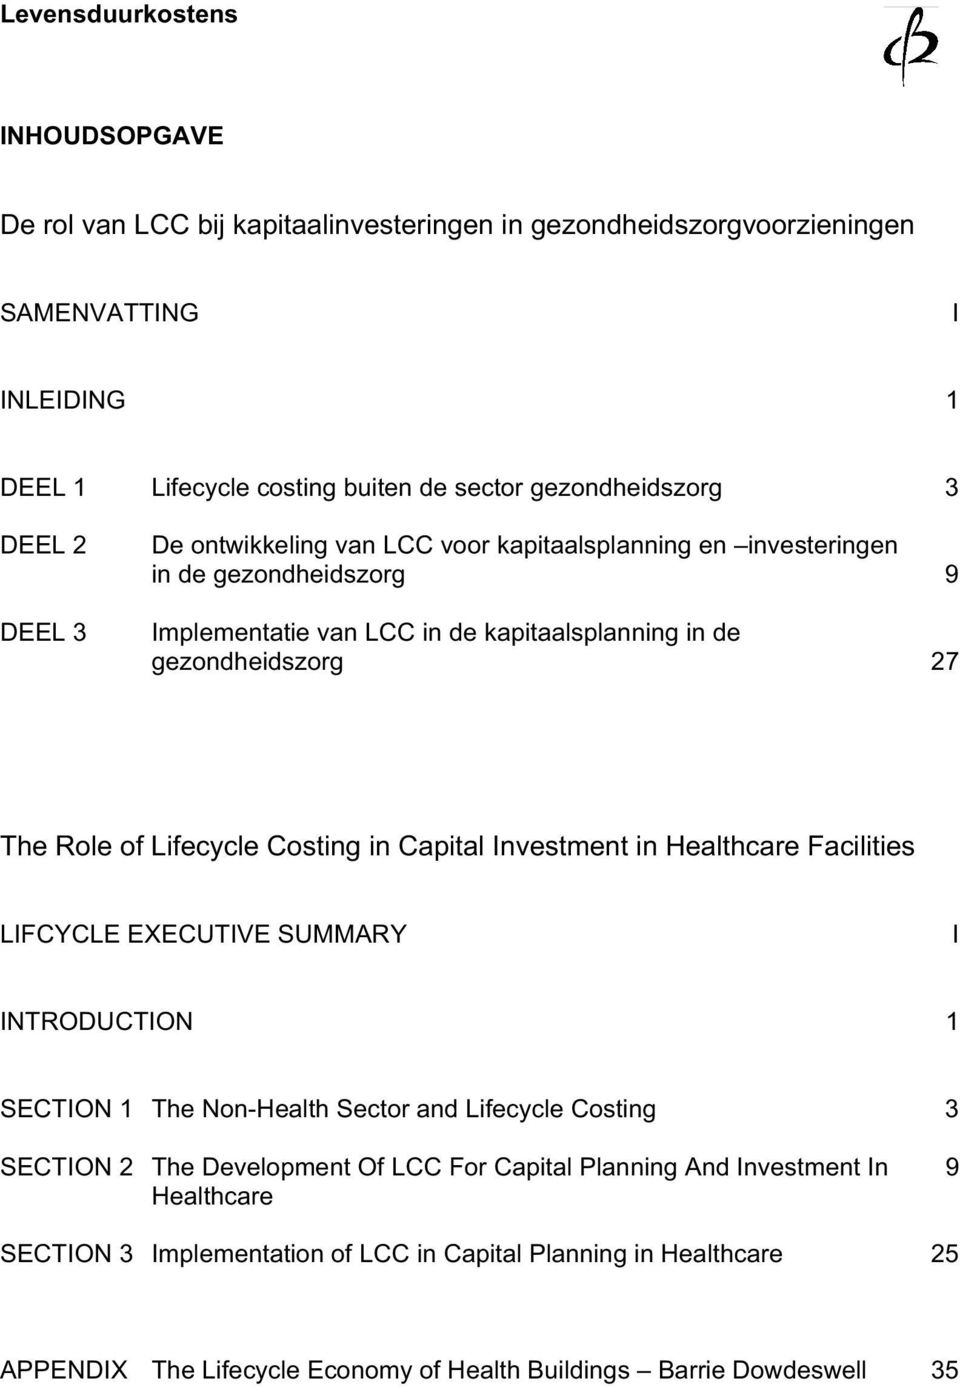 Lifecycle Costing in Capital Investment in Healthcare Facilities LIFCYCLE EXECUTIVE SUMMARY I INTRODUCTION 1 SECTION 1 The Non-Health Sector and Lifecycle Costing 3 SECTION 2 The Development